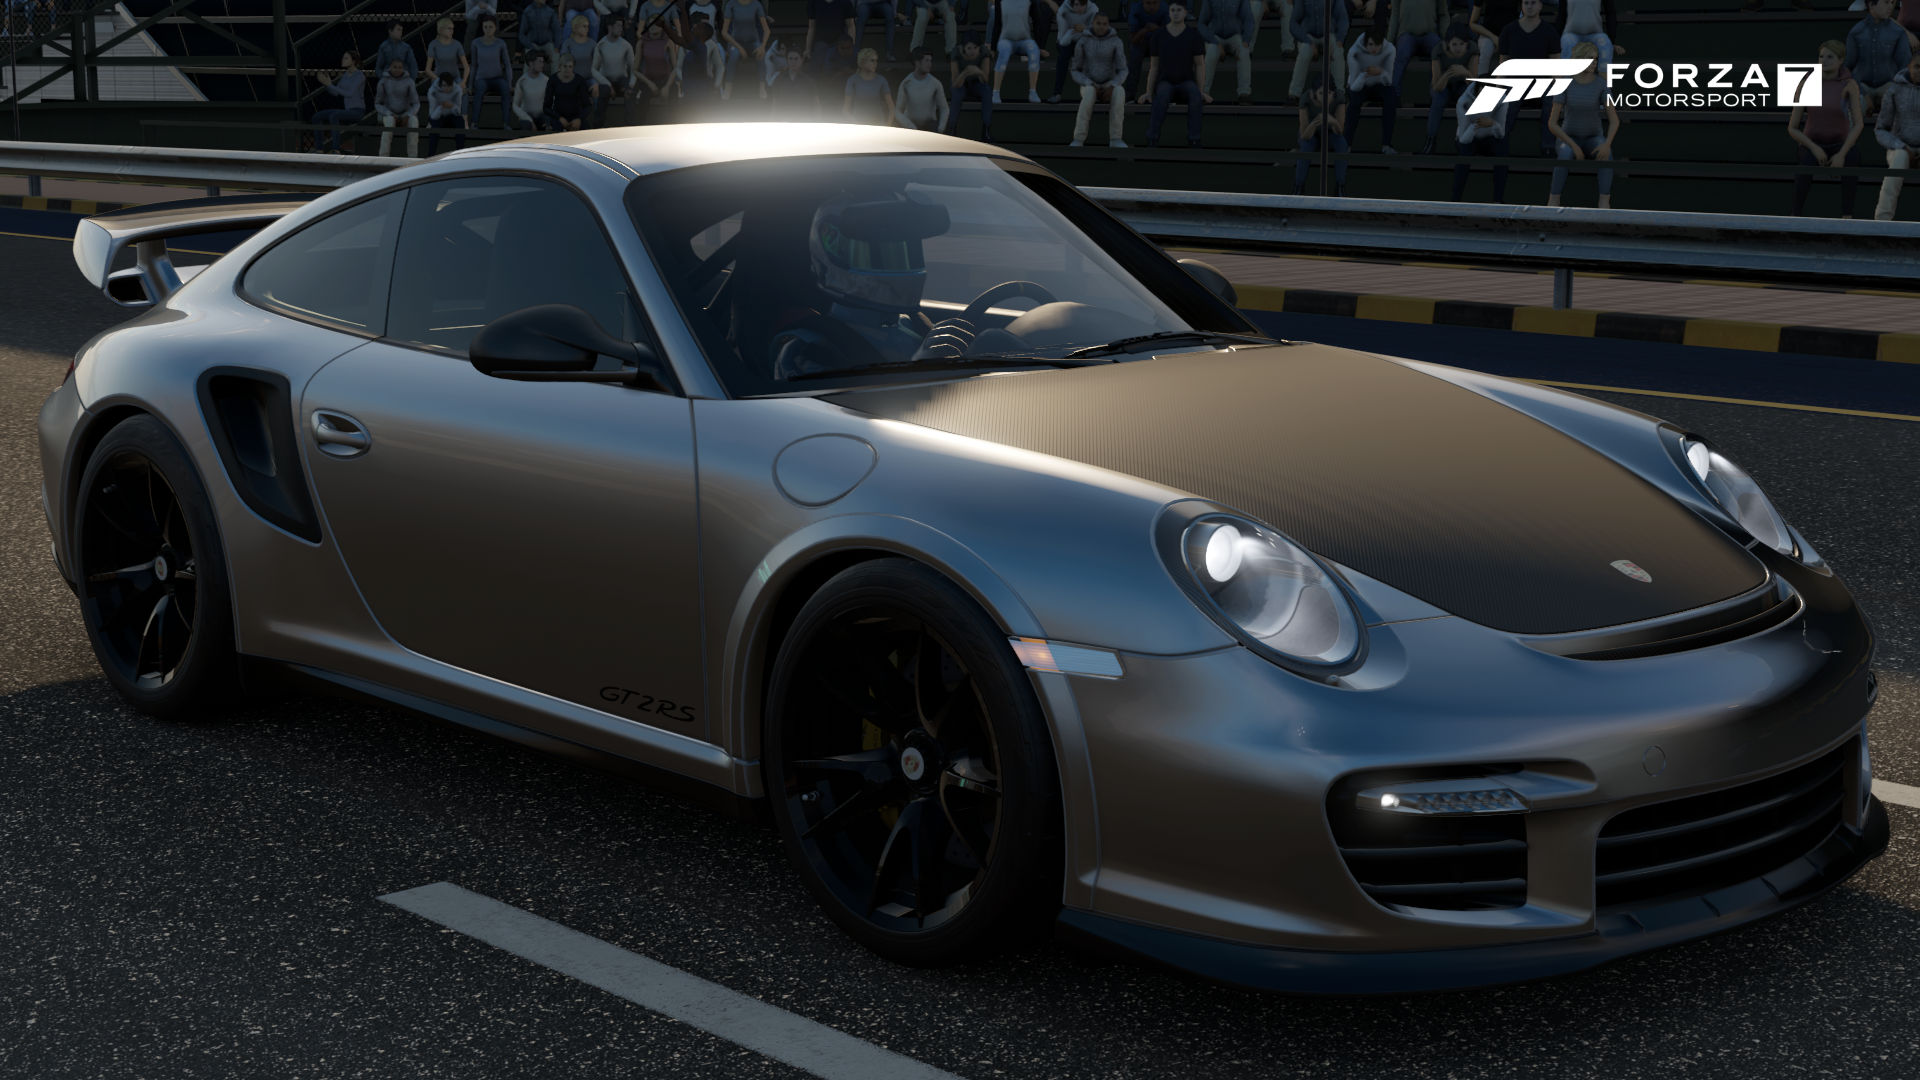 porsche 911 gt2 rs 2012 forza motorsport wiki fandom powered by wikia. Black Bedroom Furniture Sets. Home Design Ideas